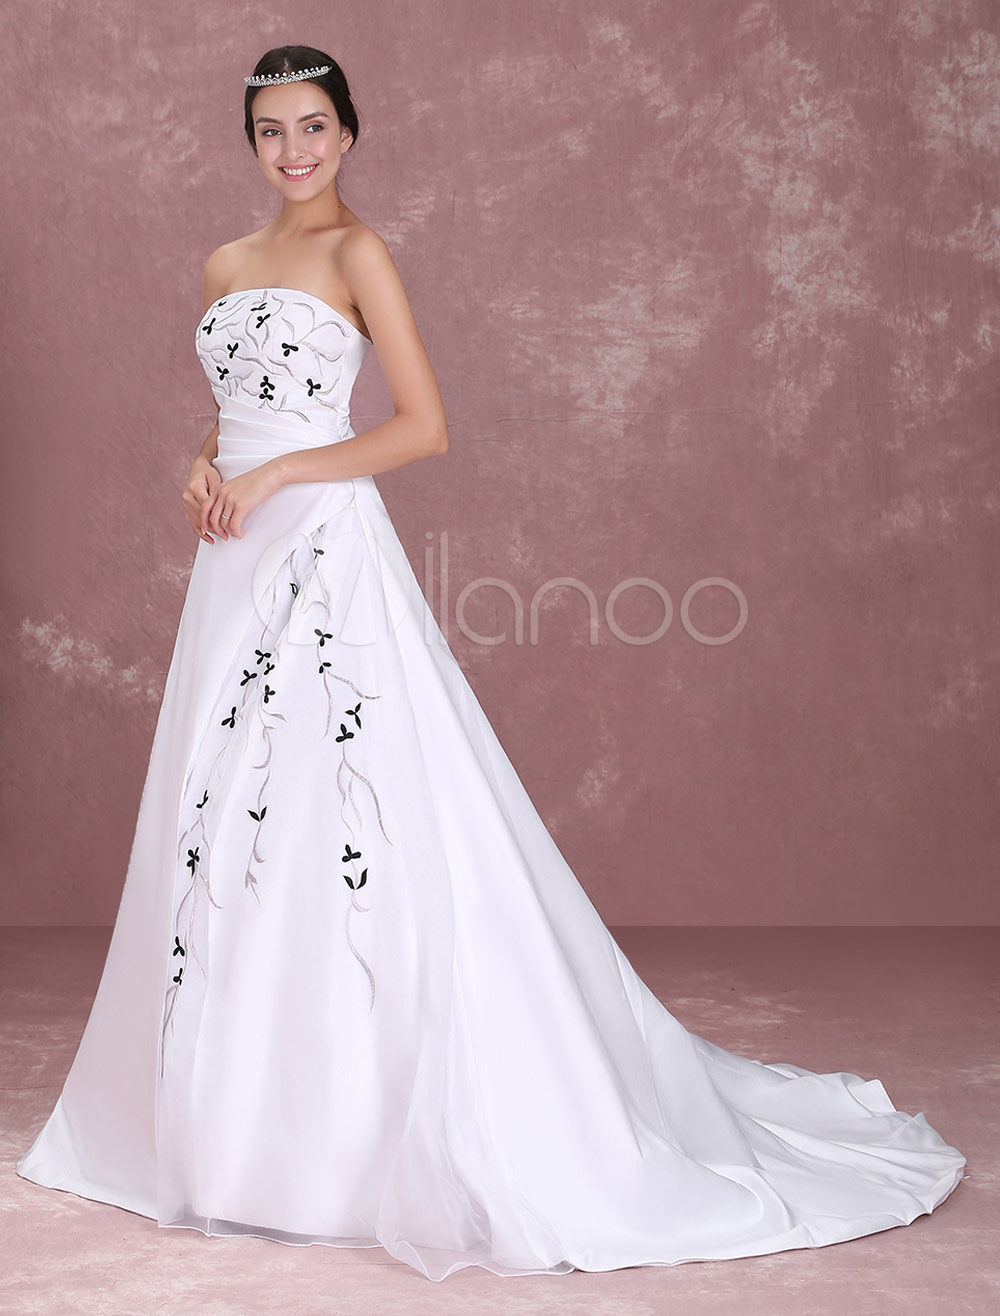 White Rococo Strapless A-line Satin Lace Wedding Dress